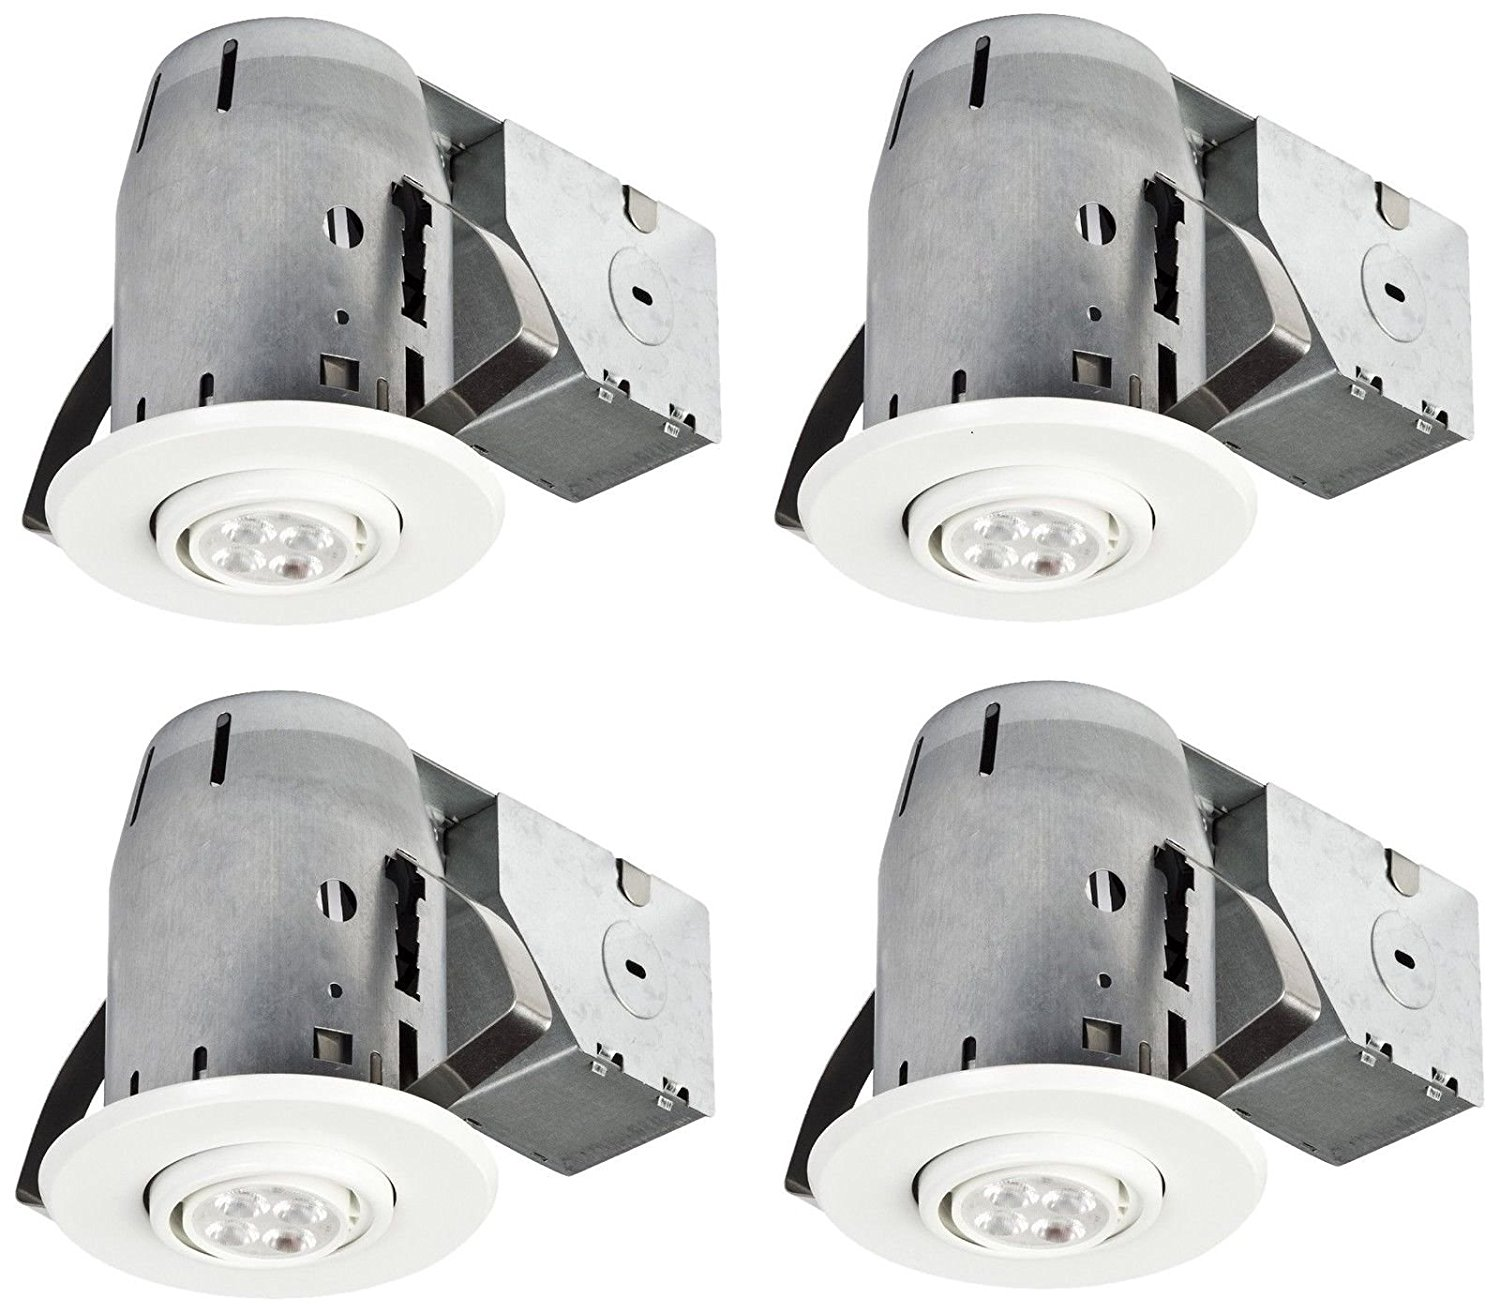 3-Inch, White Finish 4-Pack White Finish Globe Electric 90718 LED IC Rated Swiv -MP#GH4498 349Y49HBRG9108046